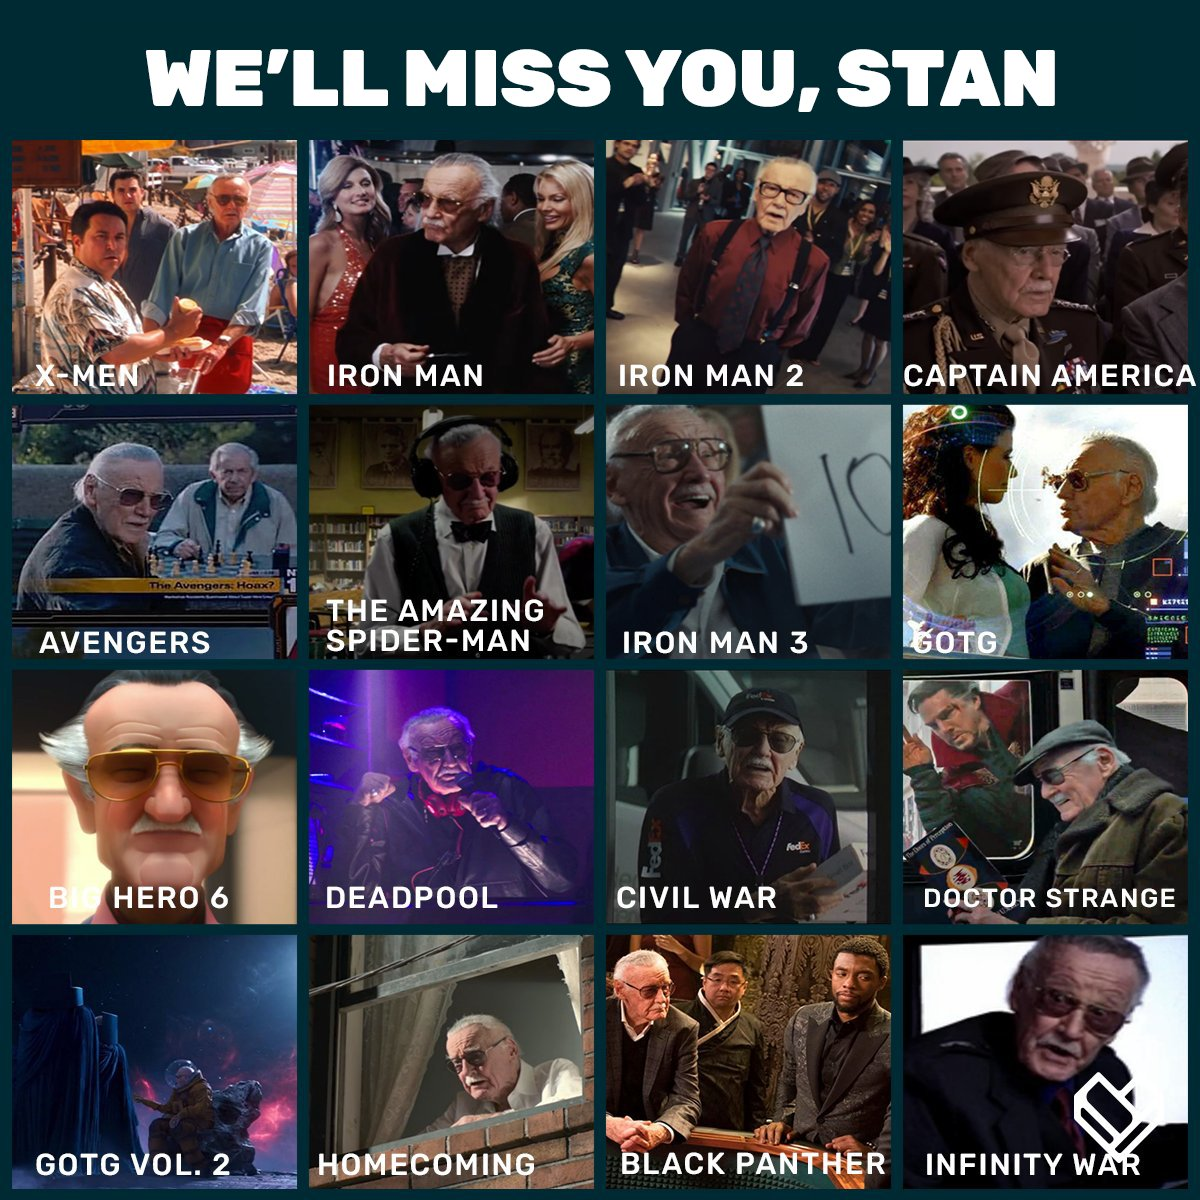 Thank you for the memories, Stan Lee ❤️